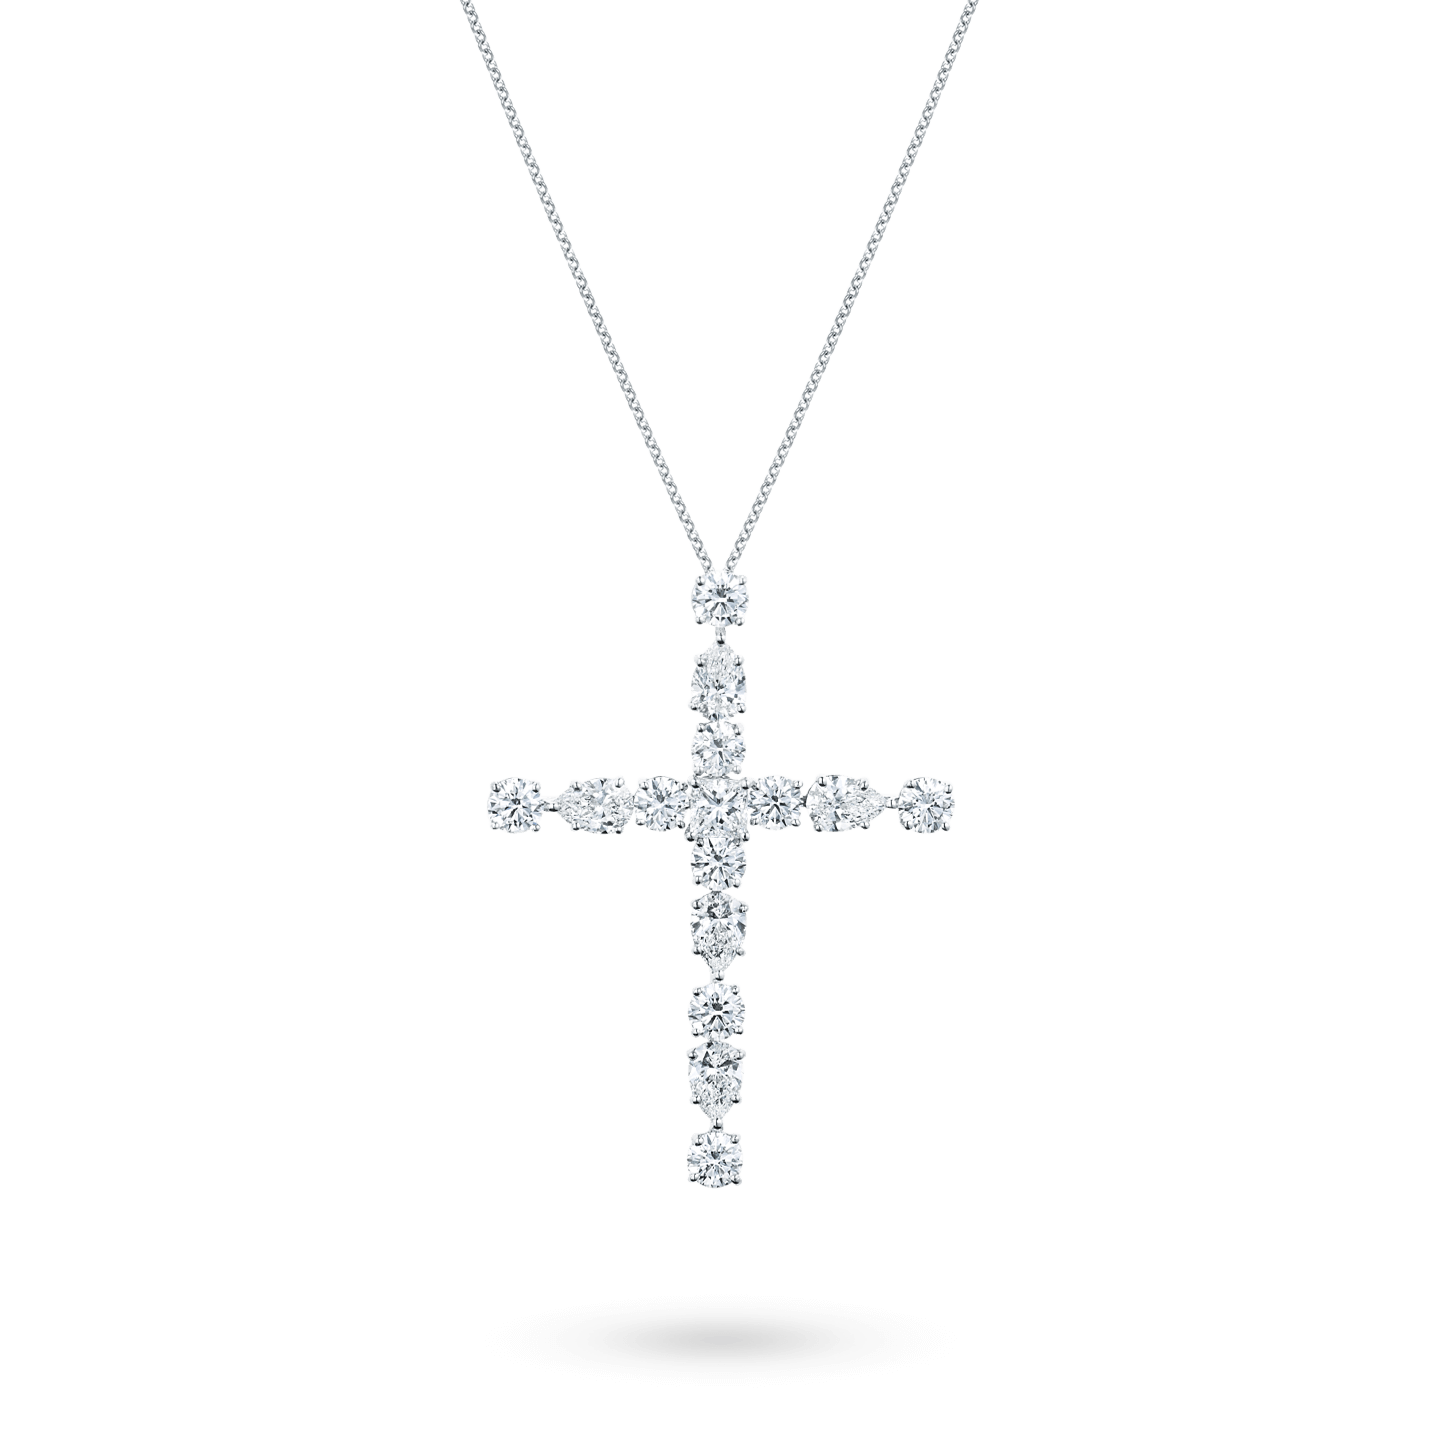 Symbols Large Diamond Madonna Cross Pendant, Product Image 2